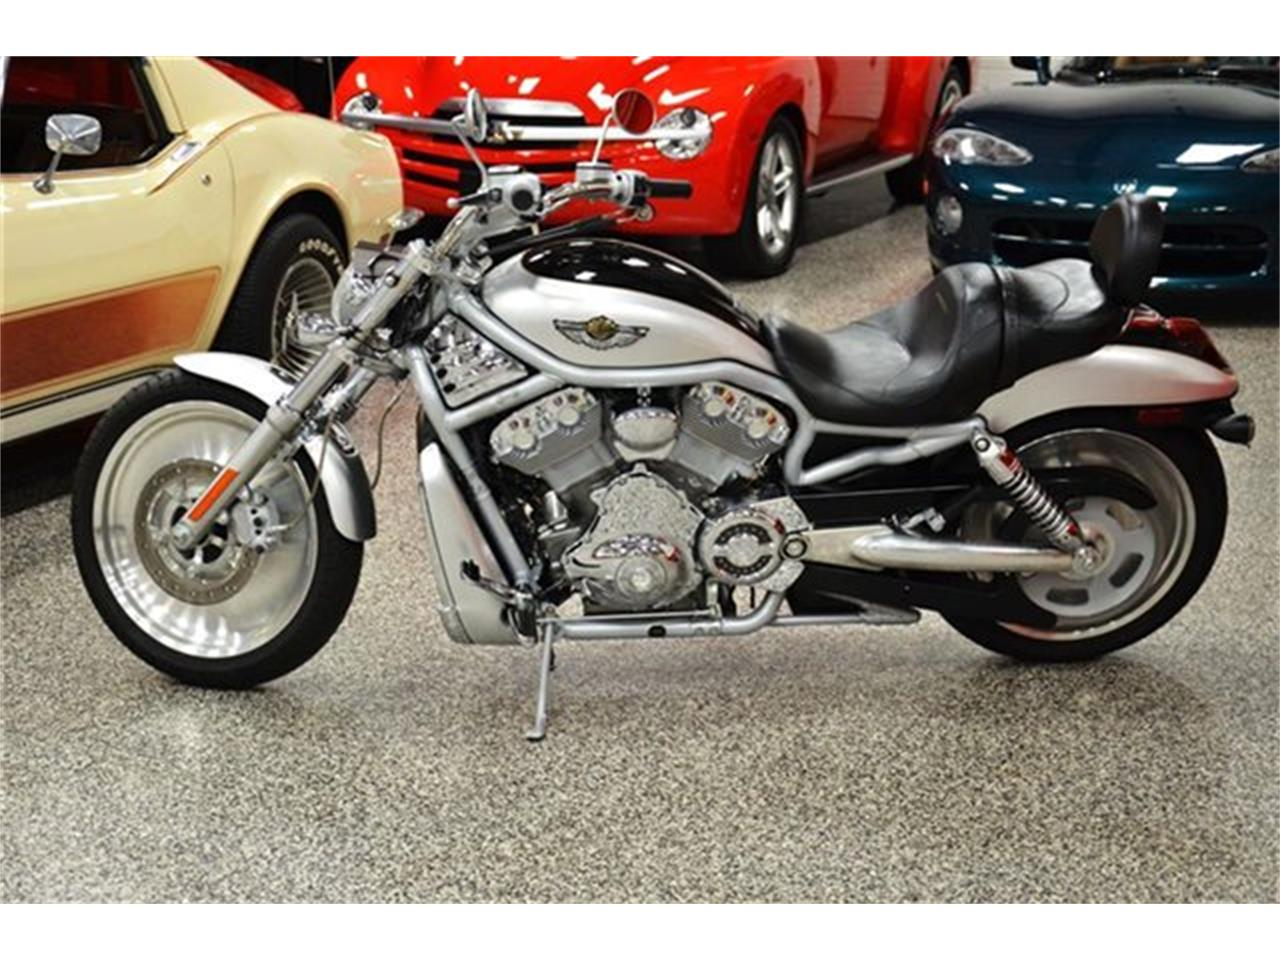 2003 Harley-Davidson VRSC for sale in Plainfield, IL – photo 17